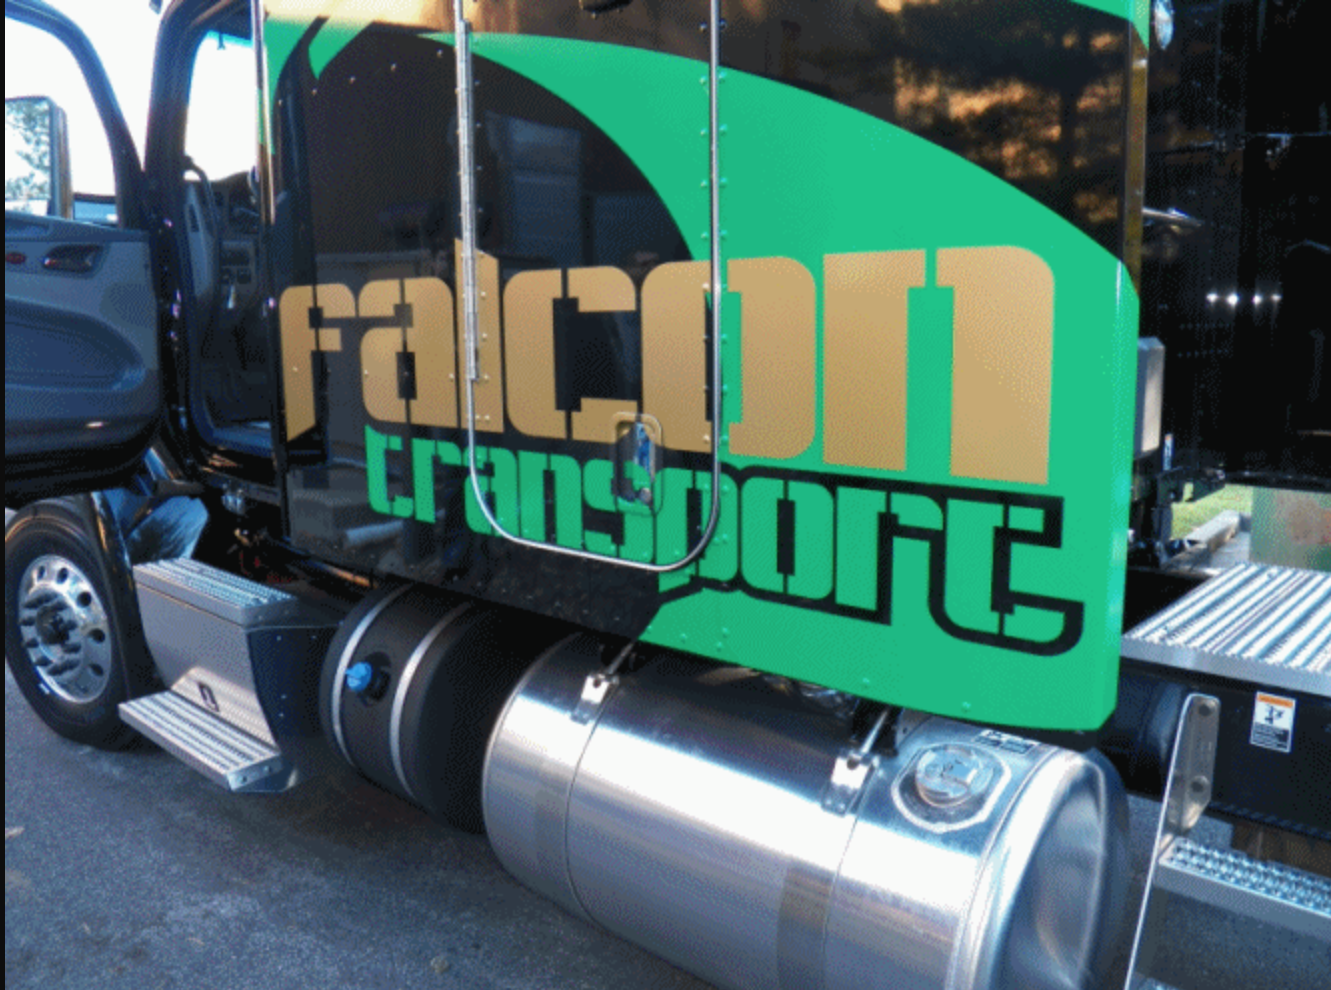 In its wake, Falcon leaves drivers, brokers and insurers